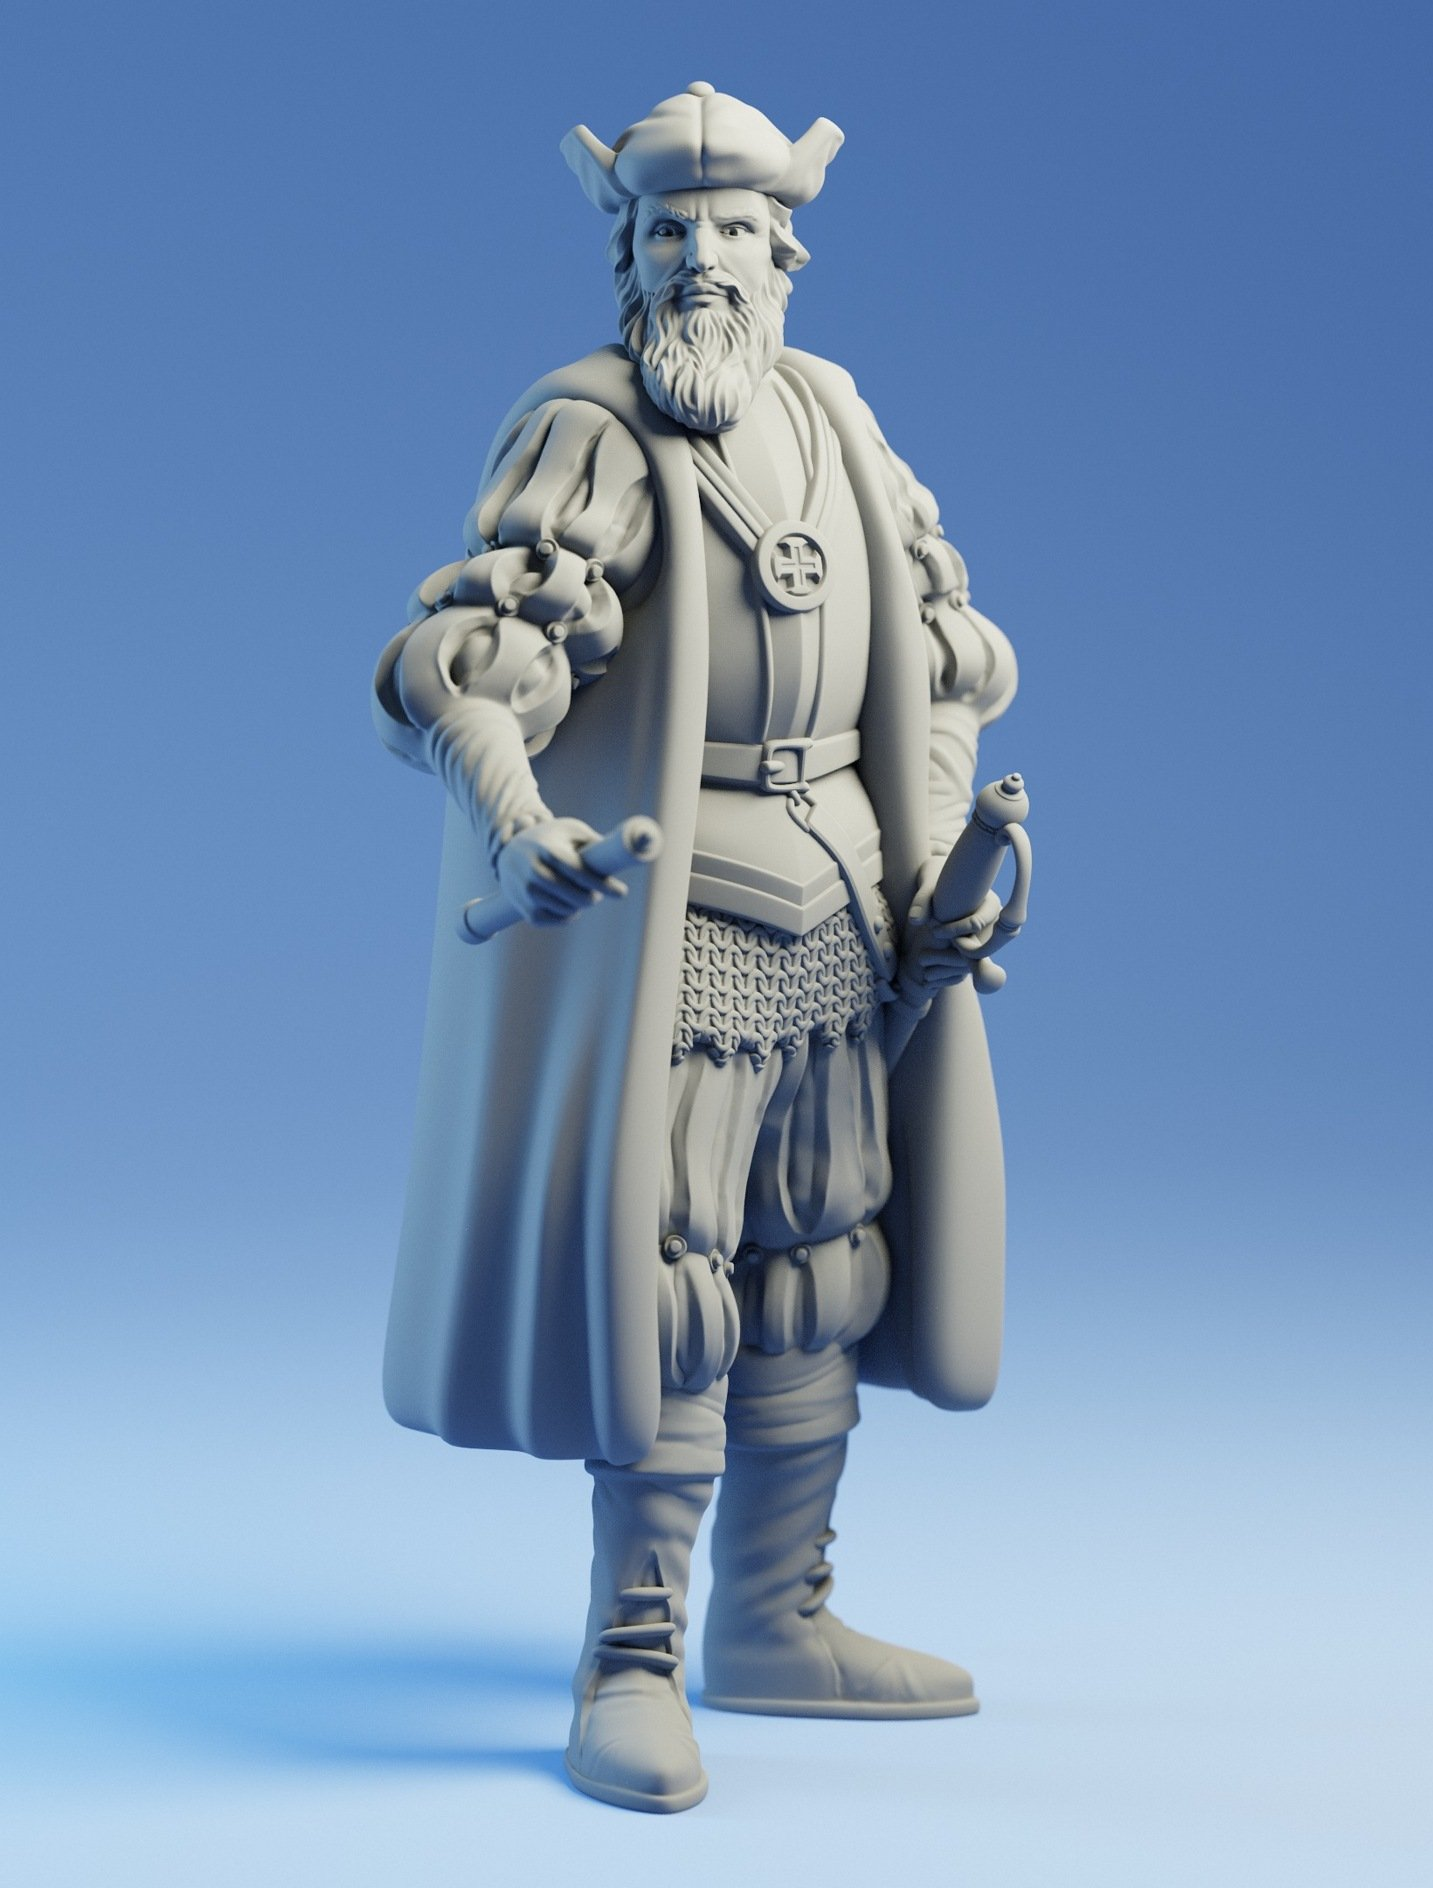 And Vasco Da Gama Vasco Da Gama Free 3d Model In Man 3dexport